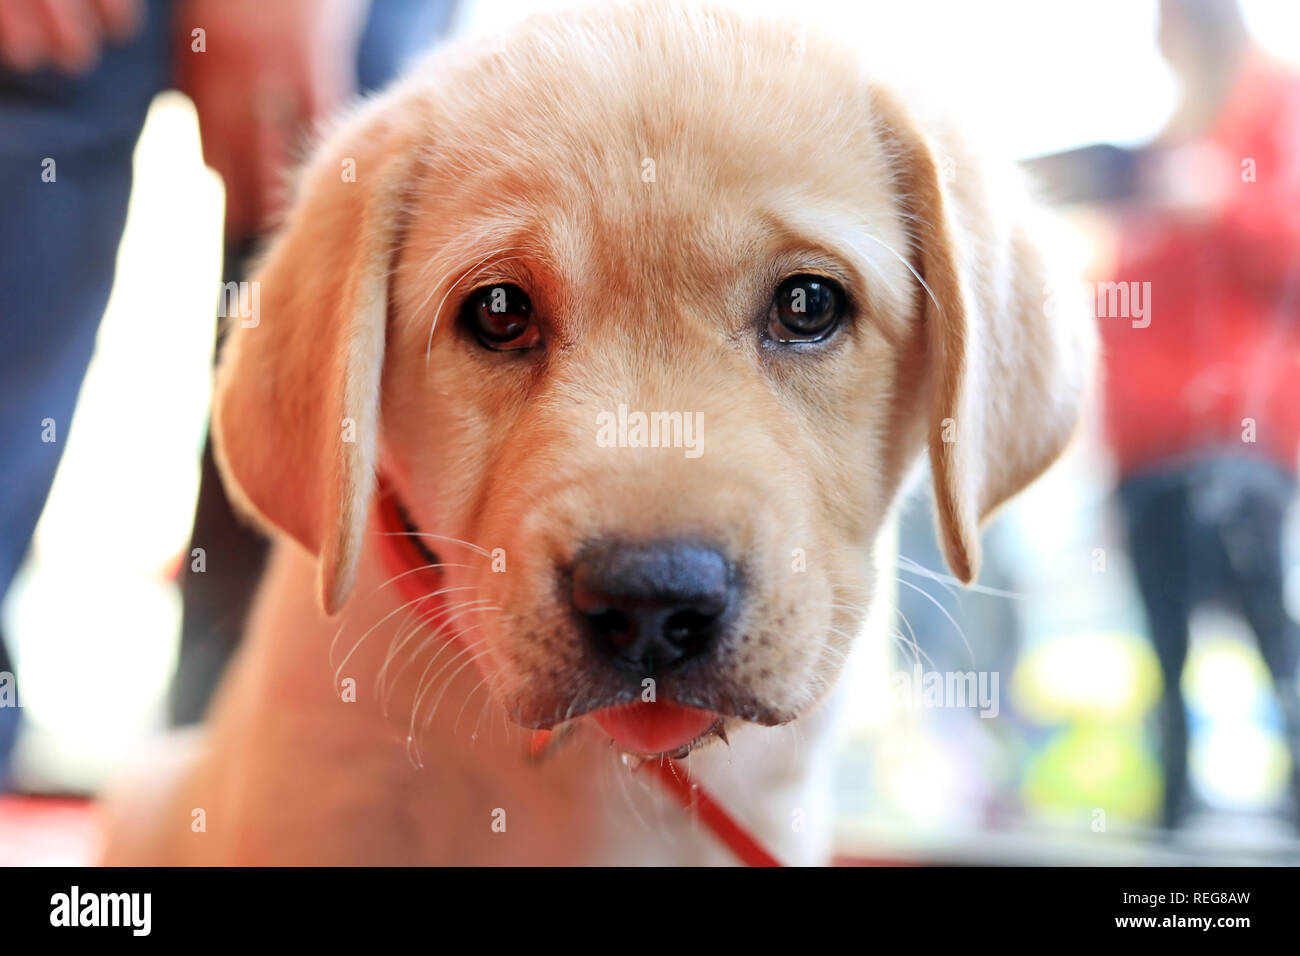 London, UK. 21st Jan 2019. On Blue Monday, Staples Solutions created a pop-up 'Happy Space' on Baker Street, London, to raise the spirits of office workers. Cute 8 Week Old Labrador Retriever Puppies were on hand to add some cheer on the most depressing day of the year. Research has found that has found that 81% of UK office workers say their office space has a direct impact on their mental health. - 21st Jan 2019 Credit: Oliver Dixon/Alamy Live News - Stock Image